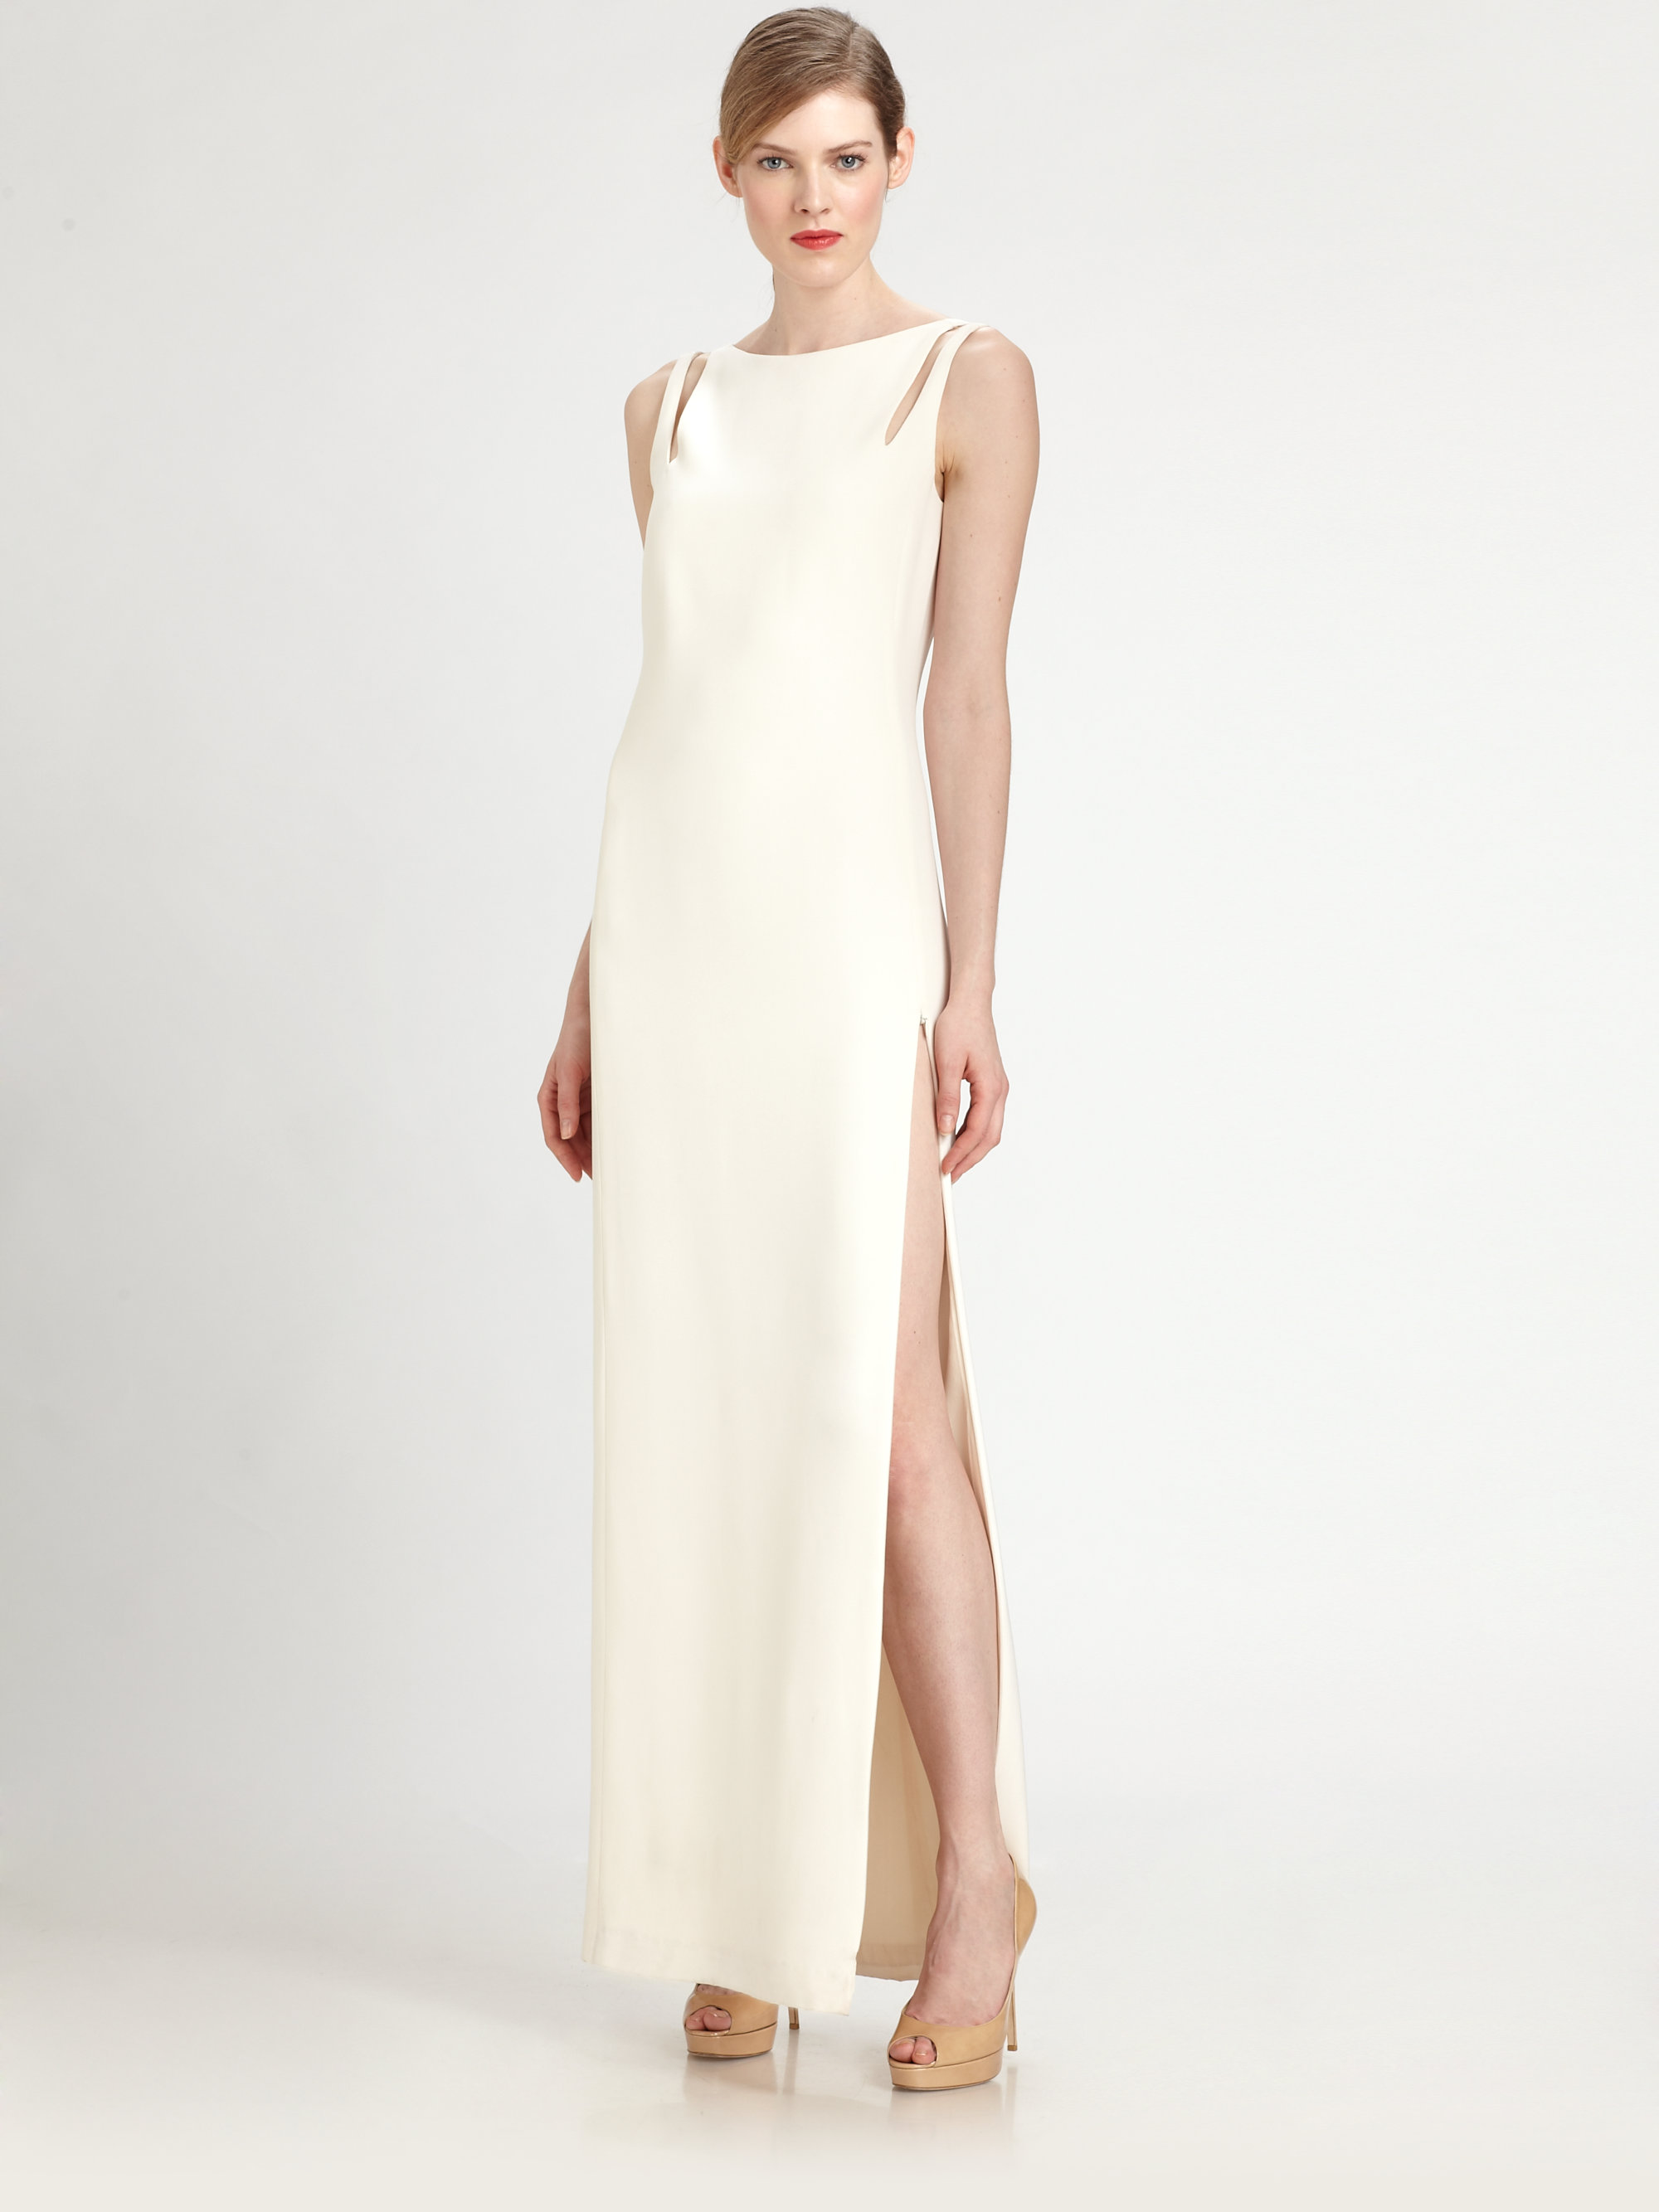 Lyst - Akris Silk Crepe Gown in White